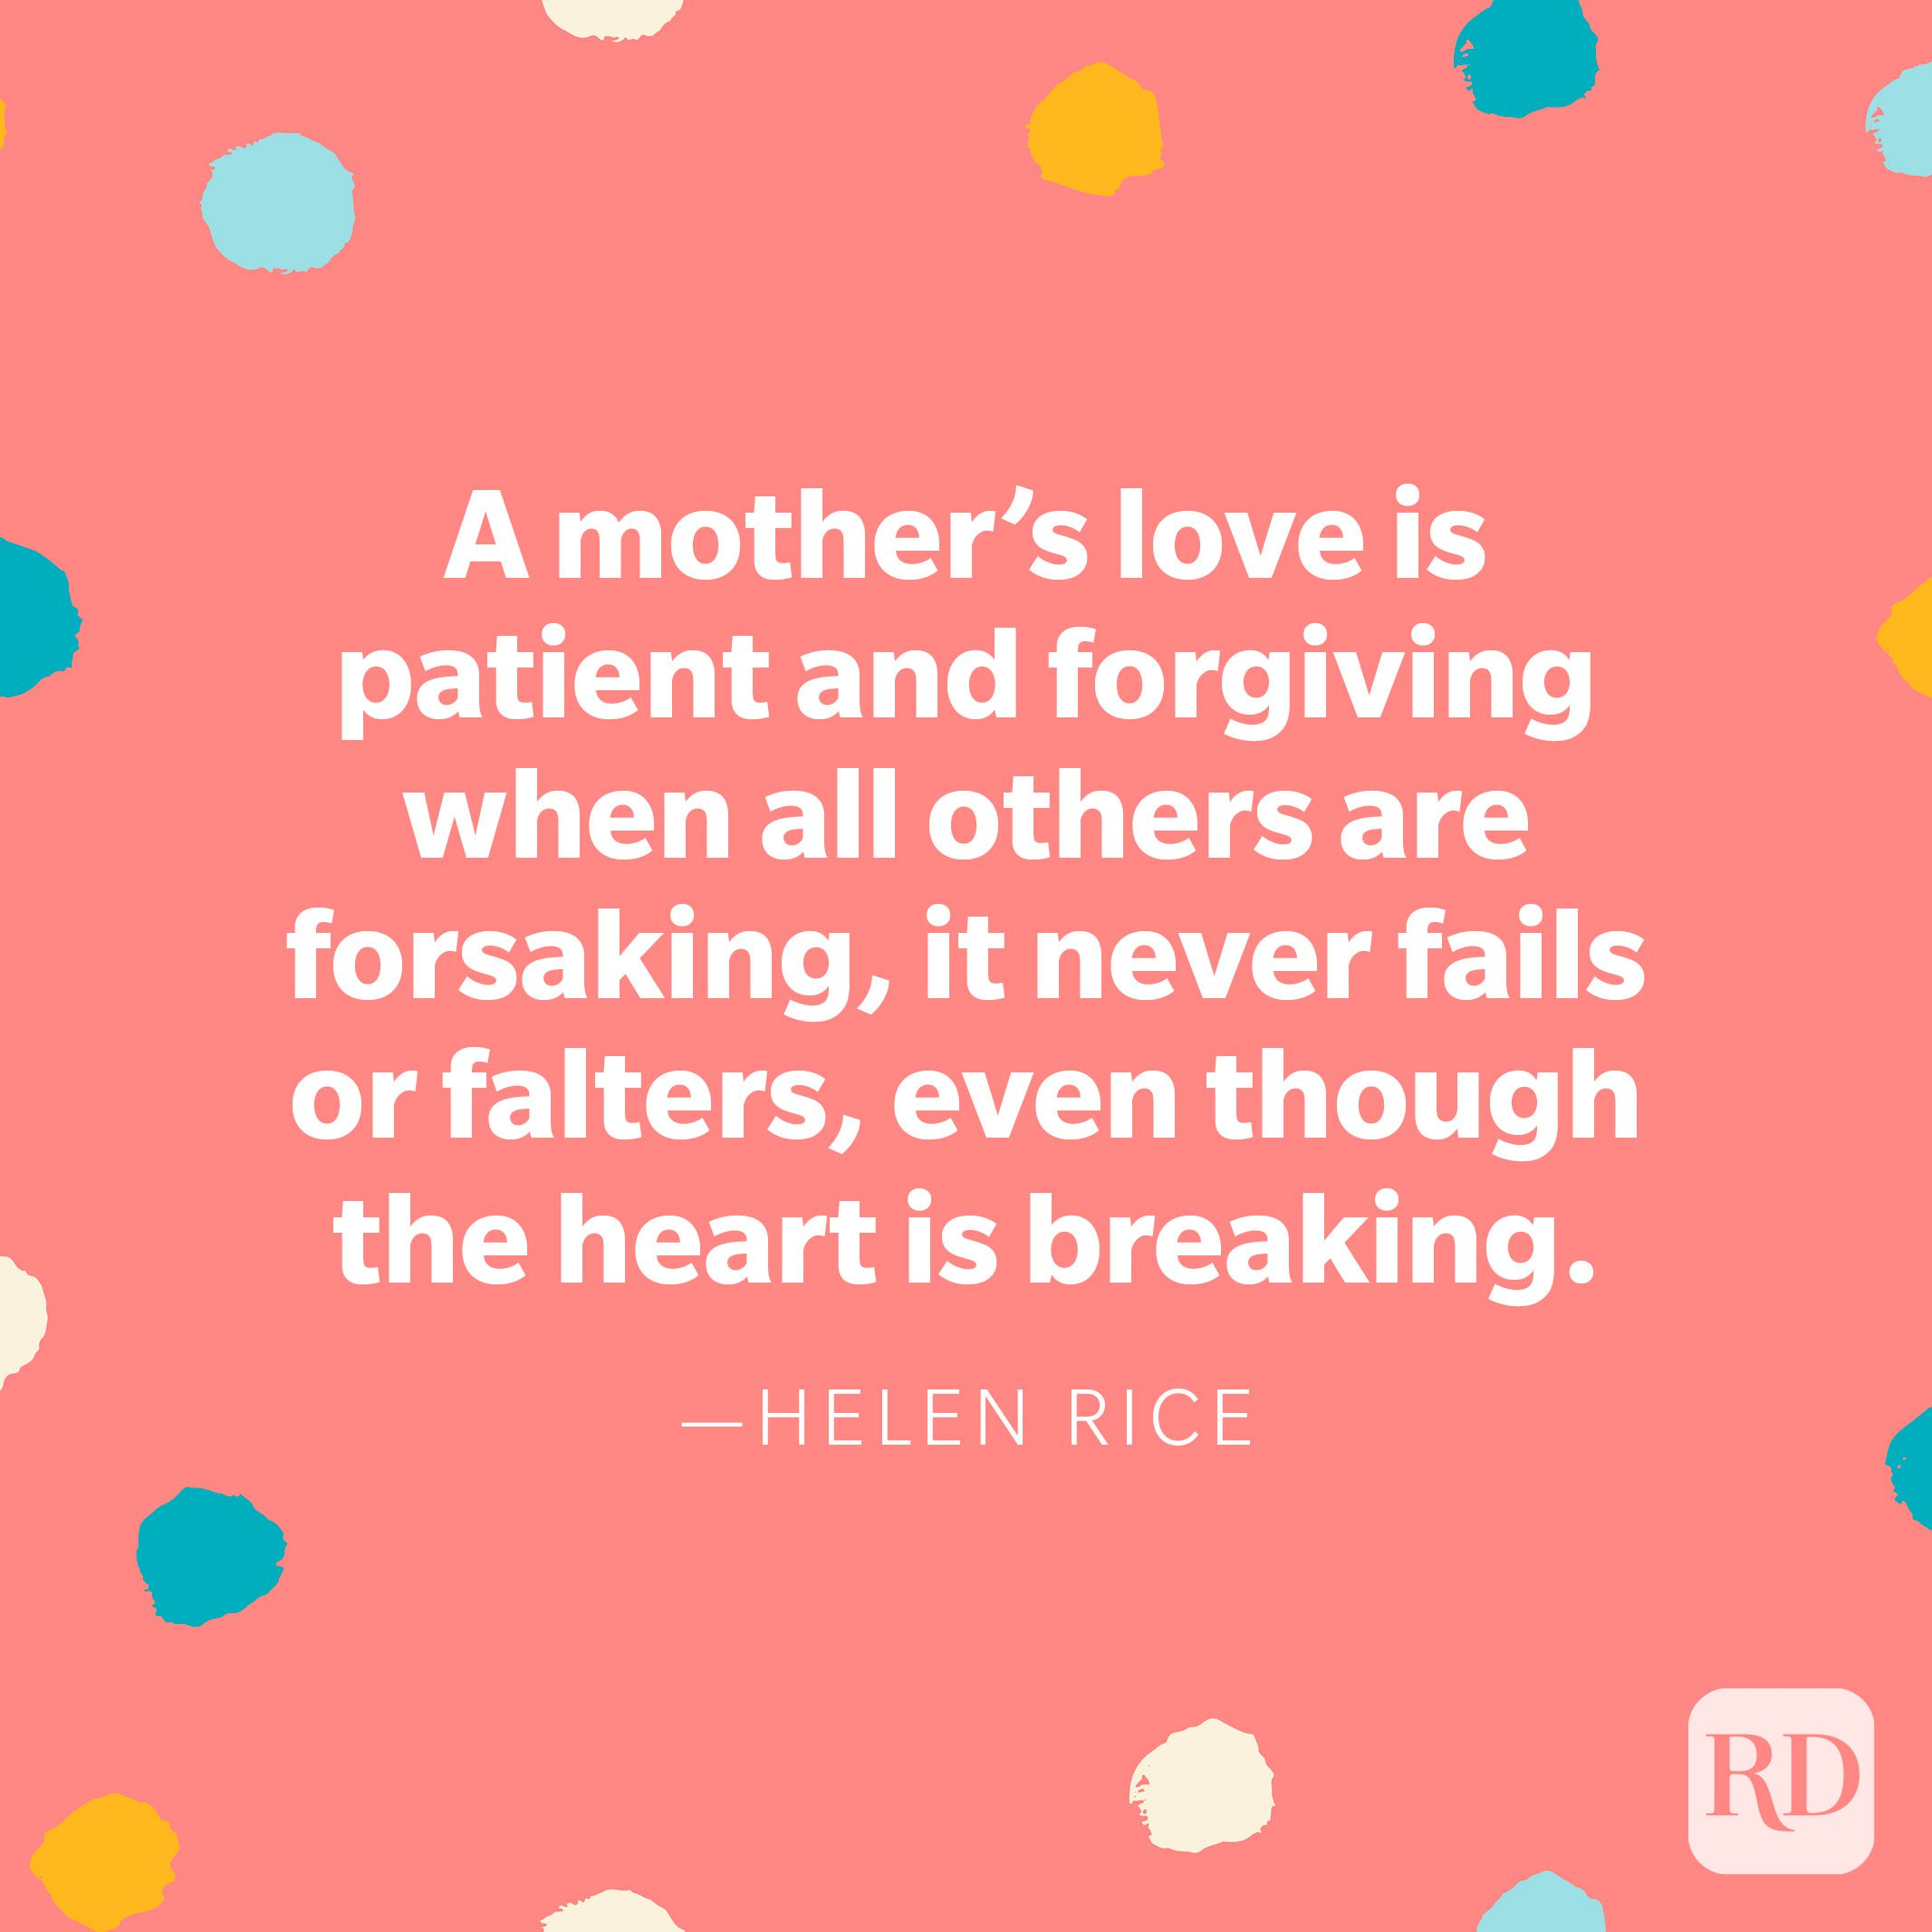 """""""A mother's love is patient and forgiving when all others are forsaking, it never fails or falters, even though the heart is breaking."""" — Helen Rice"""